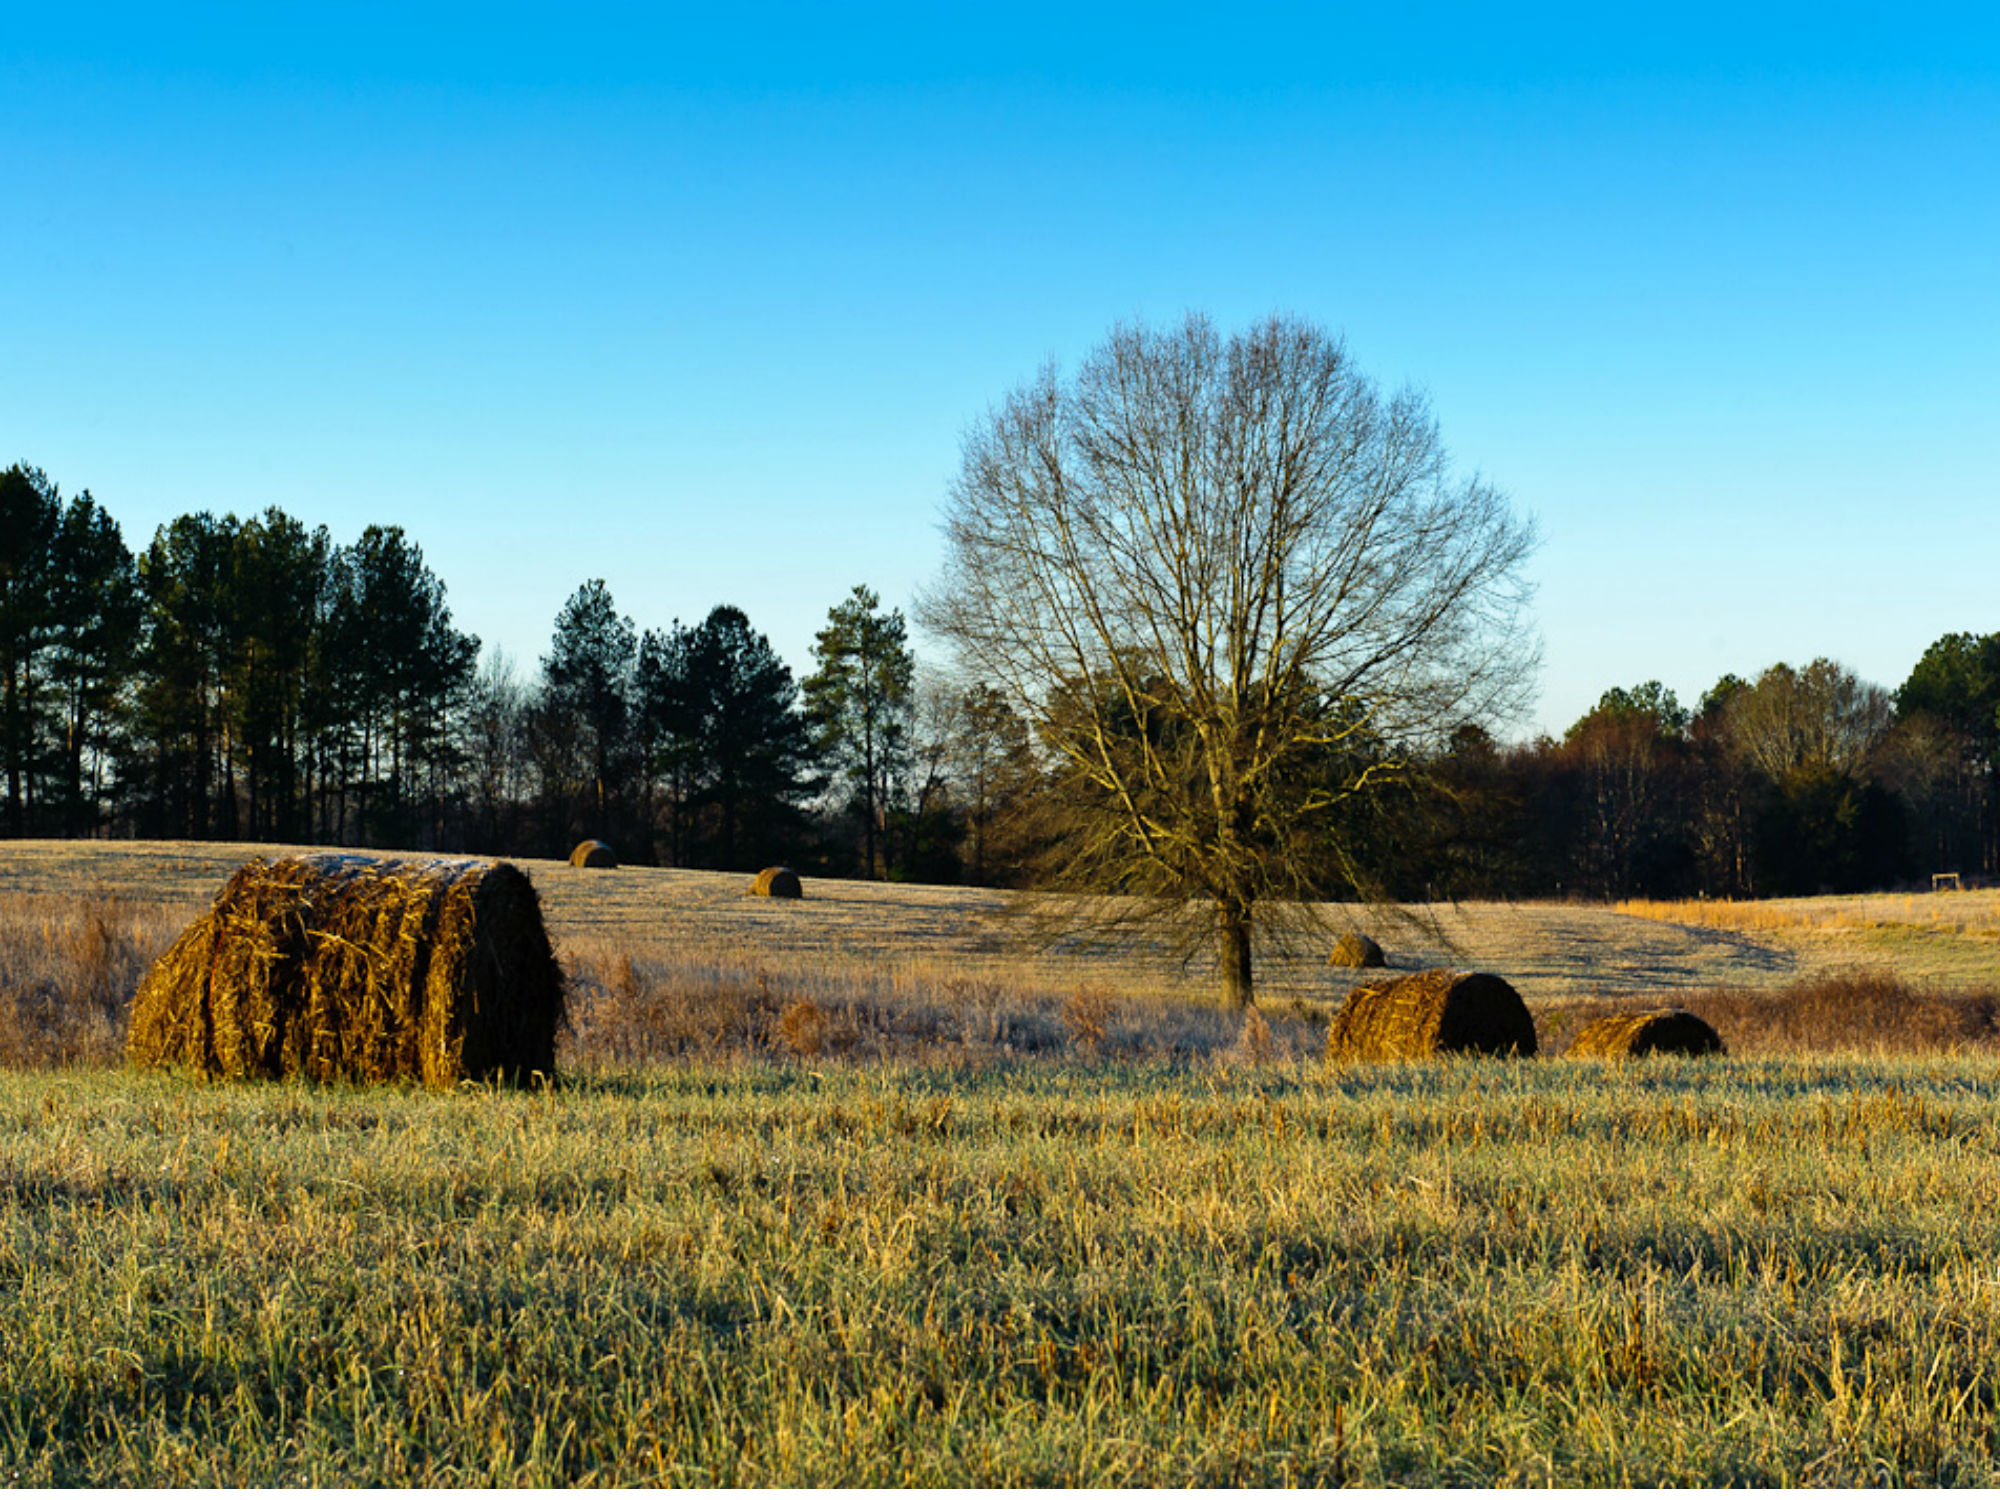 Hayfield with a treeline in the background and hay bails